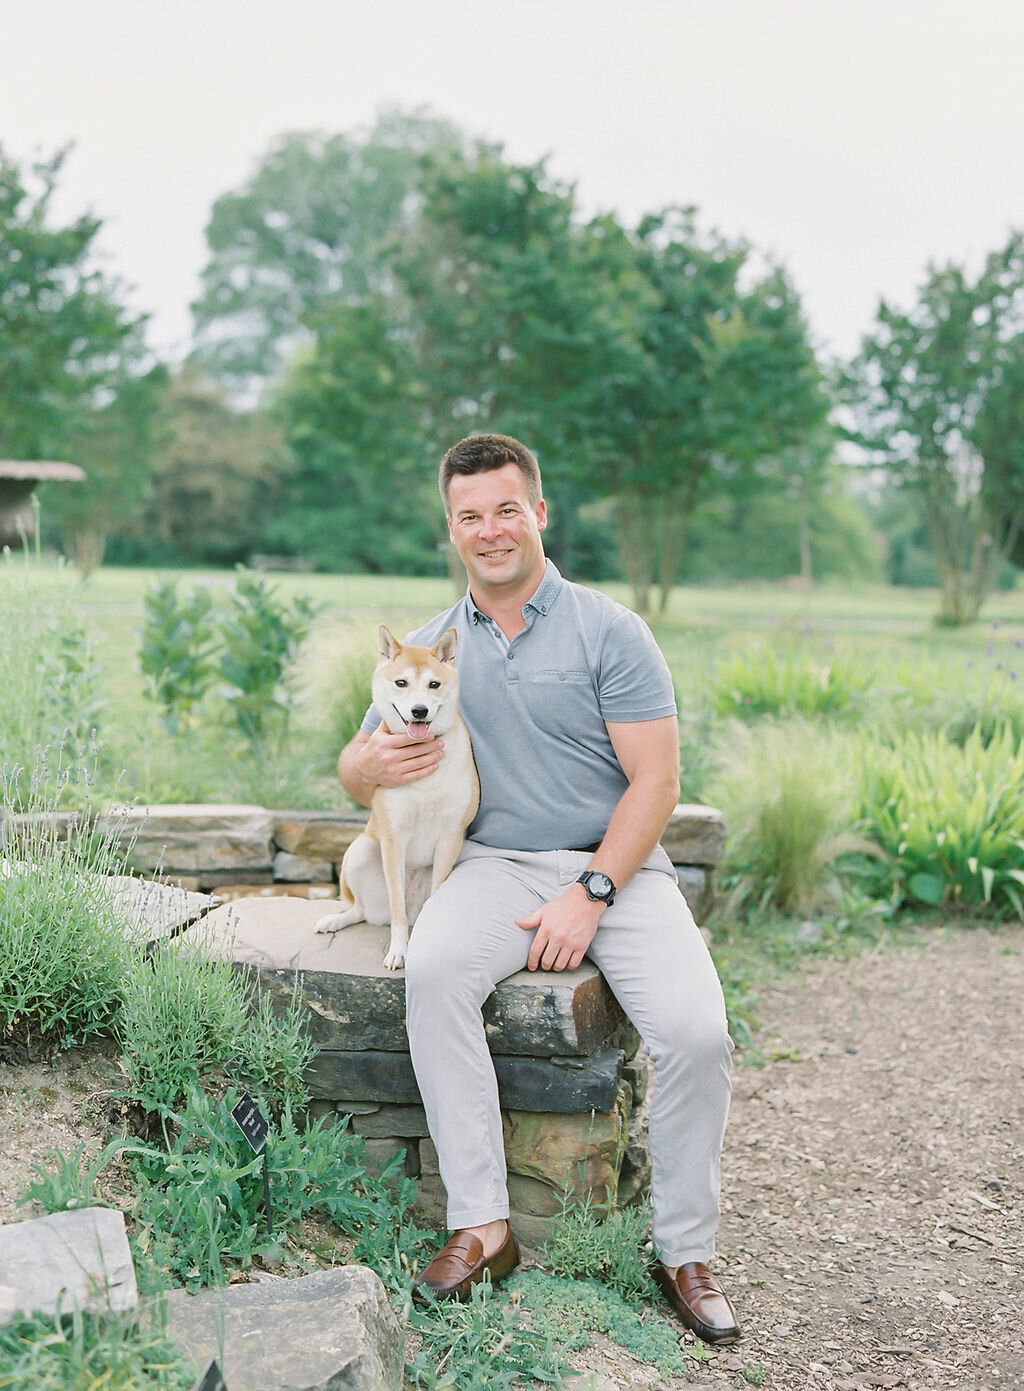 Cylburn Arboretum and Tribeca Engagement Photography Session by Vicki Grafton on East Made Co Baltimore Wedding Planner Blog-39.jpg